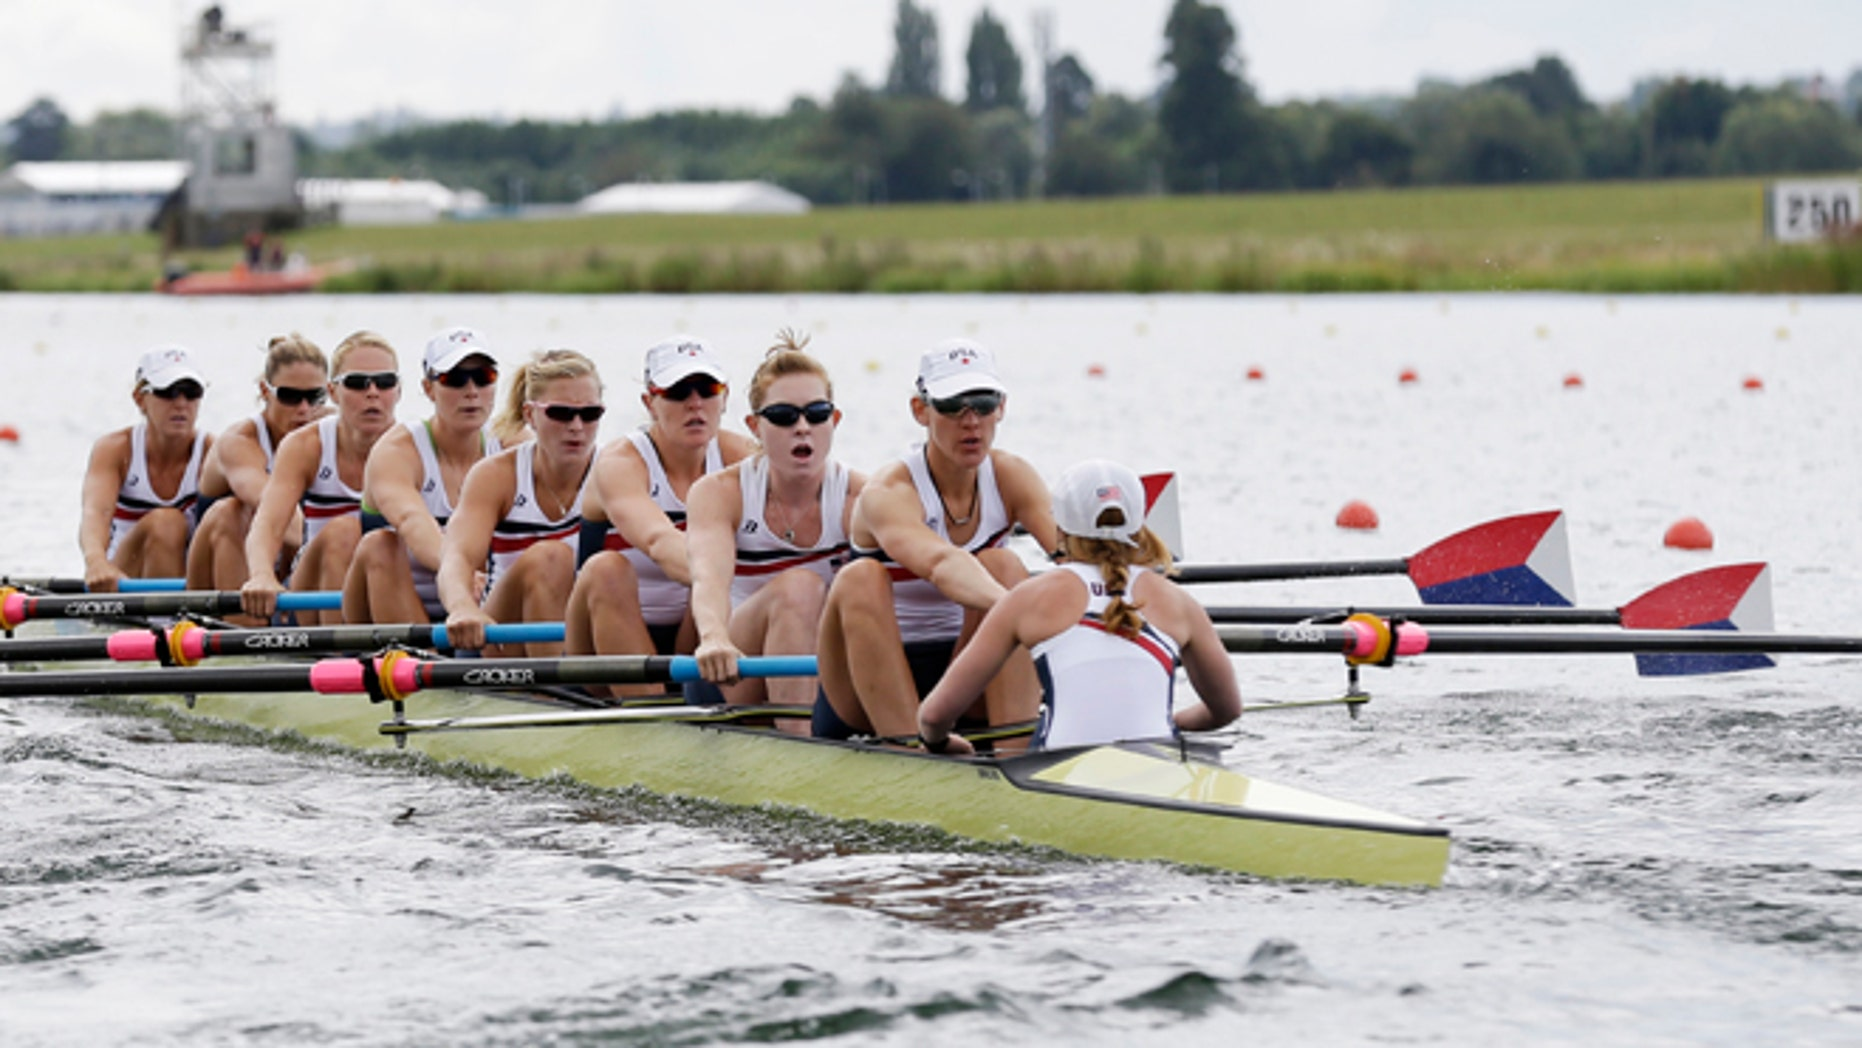 July 29, 2012: U.S. rowers, from right, Mary Whipple, Caryn Davies, Caroline Lind, Eleanor Logan, Meghan Musnicki, Taylor Ritzel, Esther Lofgren, Zsuzsanna Francia, and Erin Cafaro stroke during a women's rowing eight heat in Eton Dorney, near Windsor, England, at the 2012 Summer Olympics.